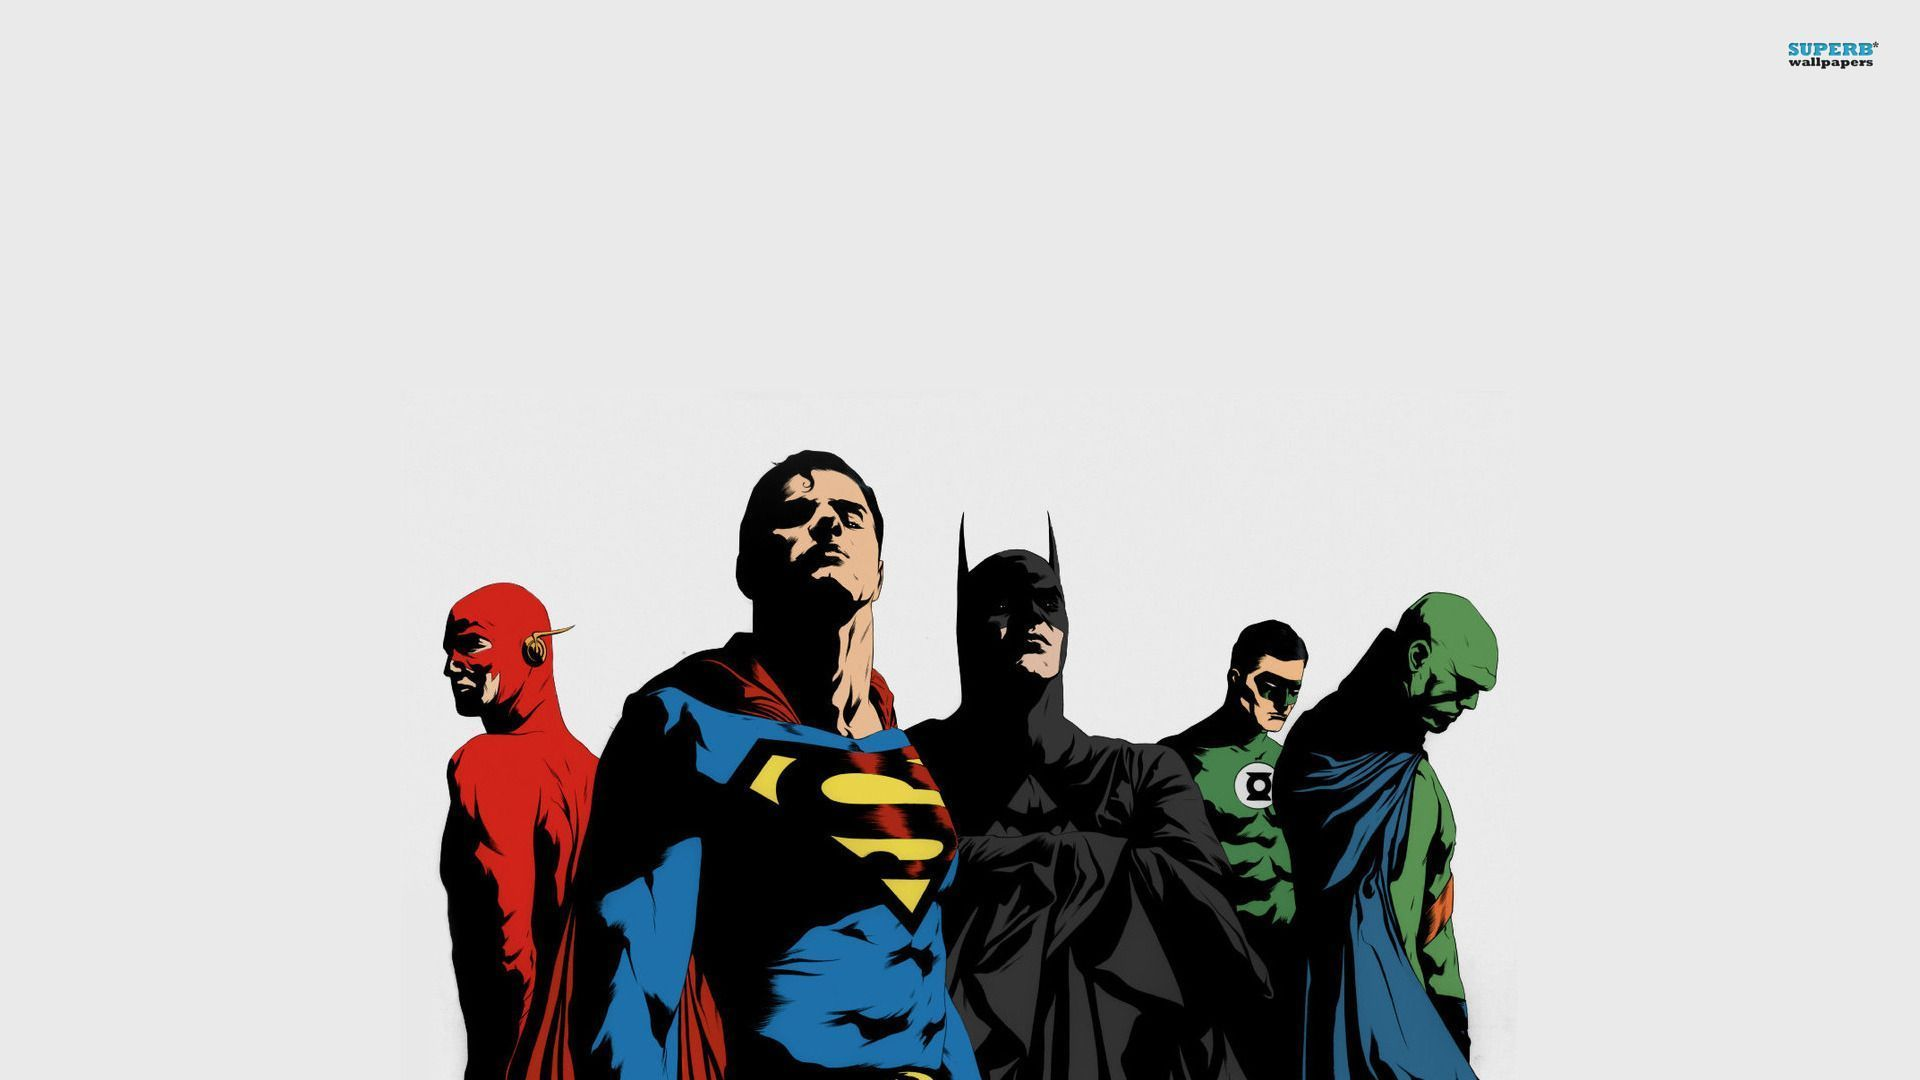 Hd wallpaper justice league - Justice League Wallpaper Hd